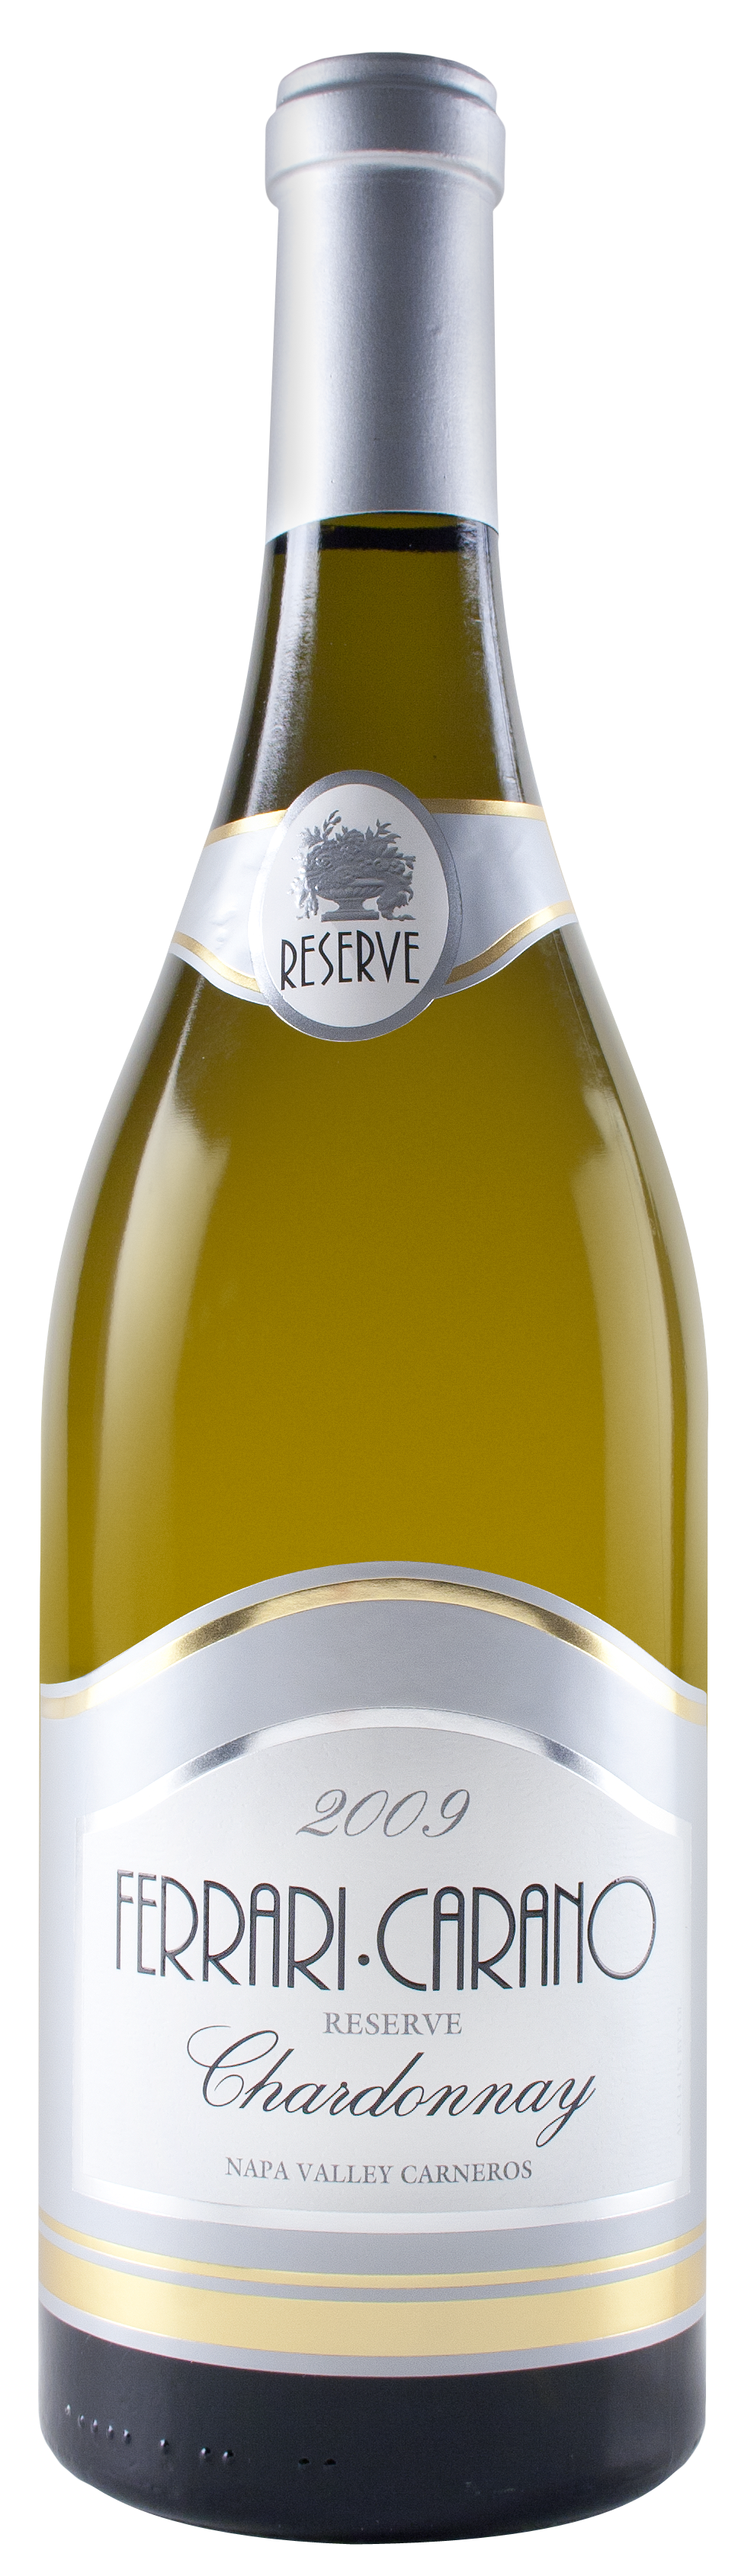 ferrari carano reserve chardonnay 2013 seattle wine co seattle wine. Cars Review. Best American Auto & Cars Review